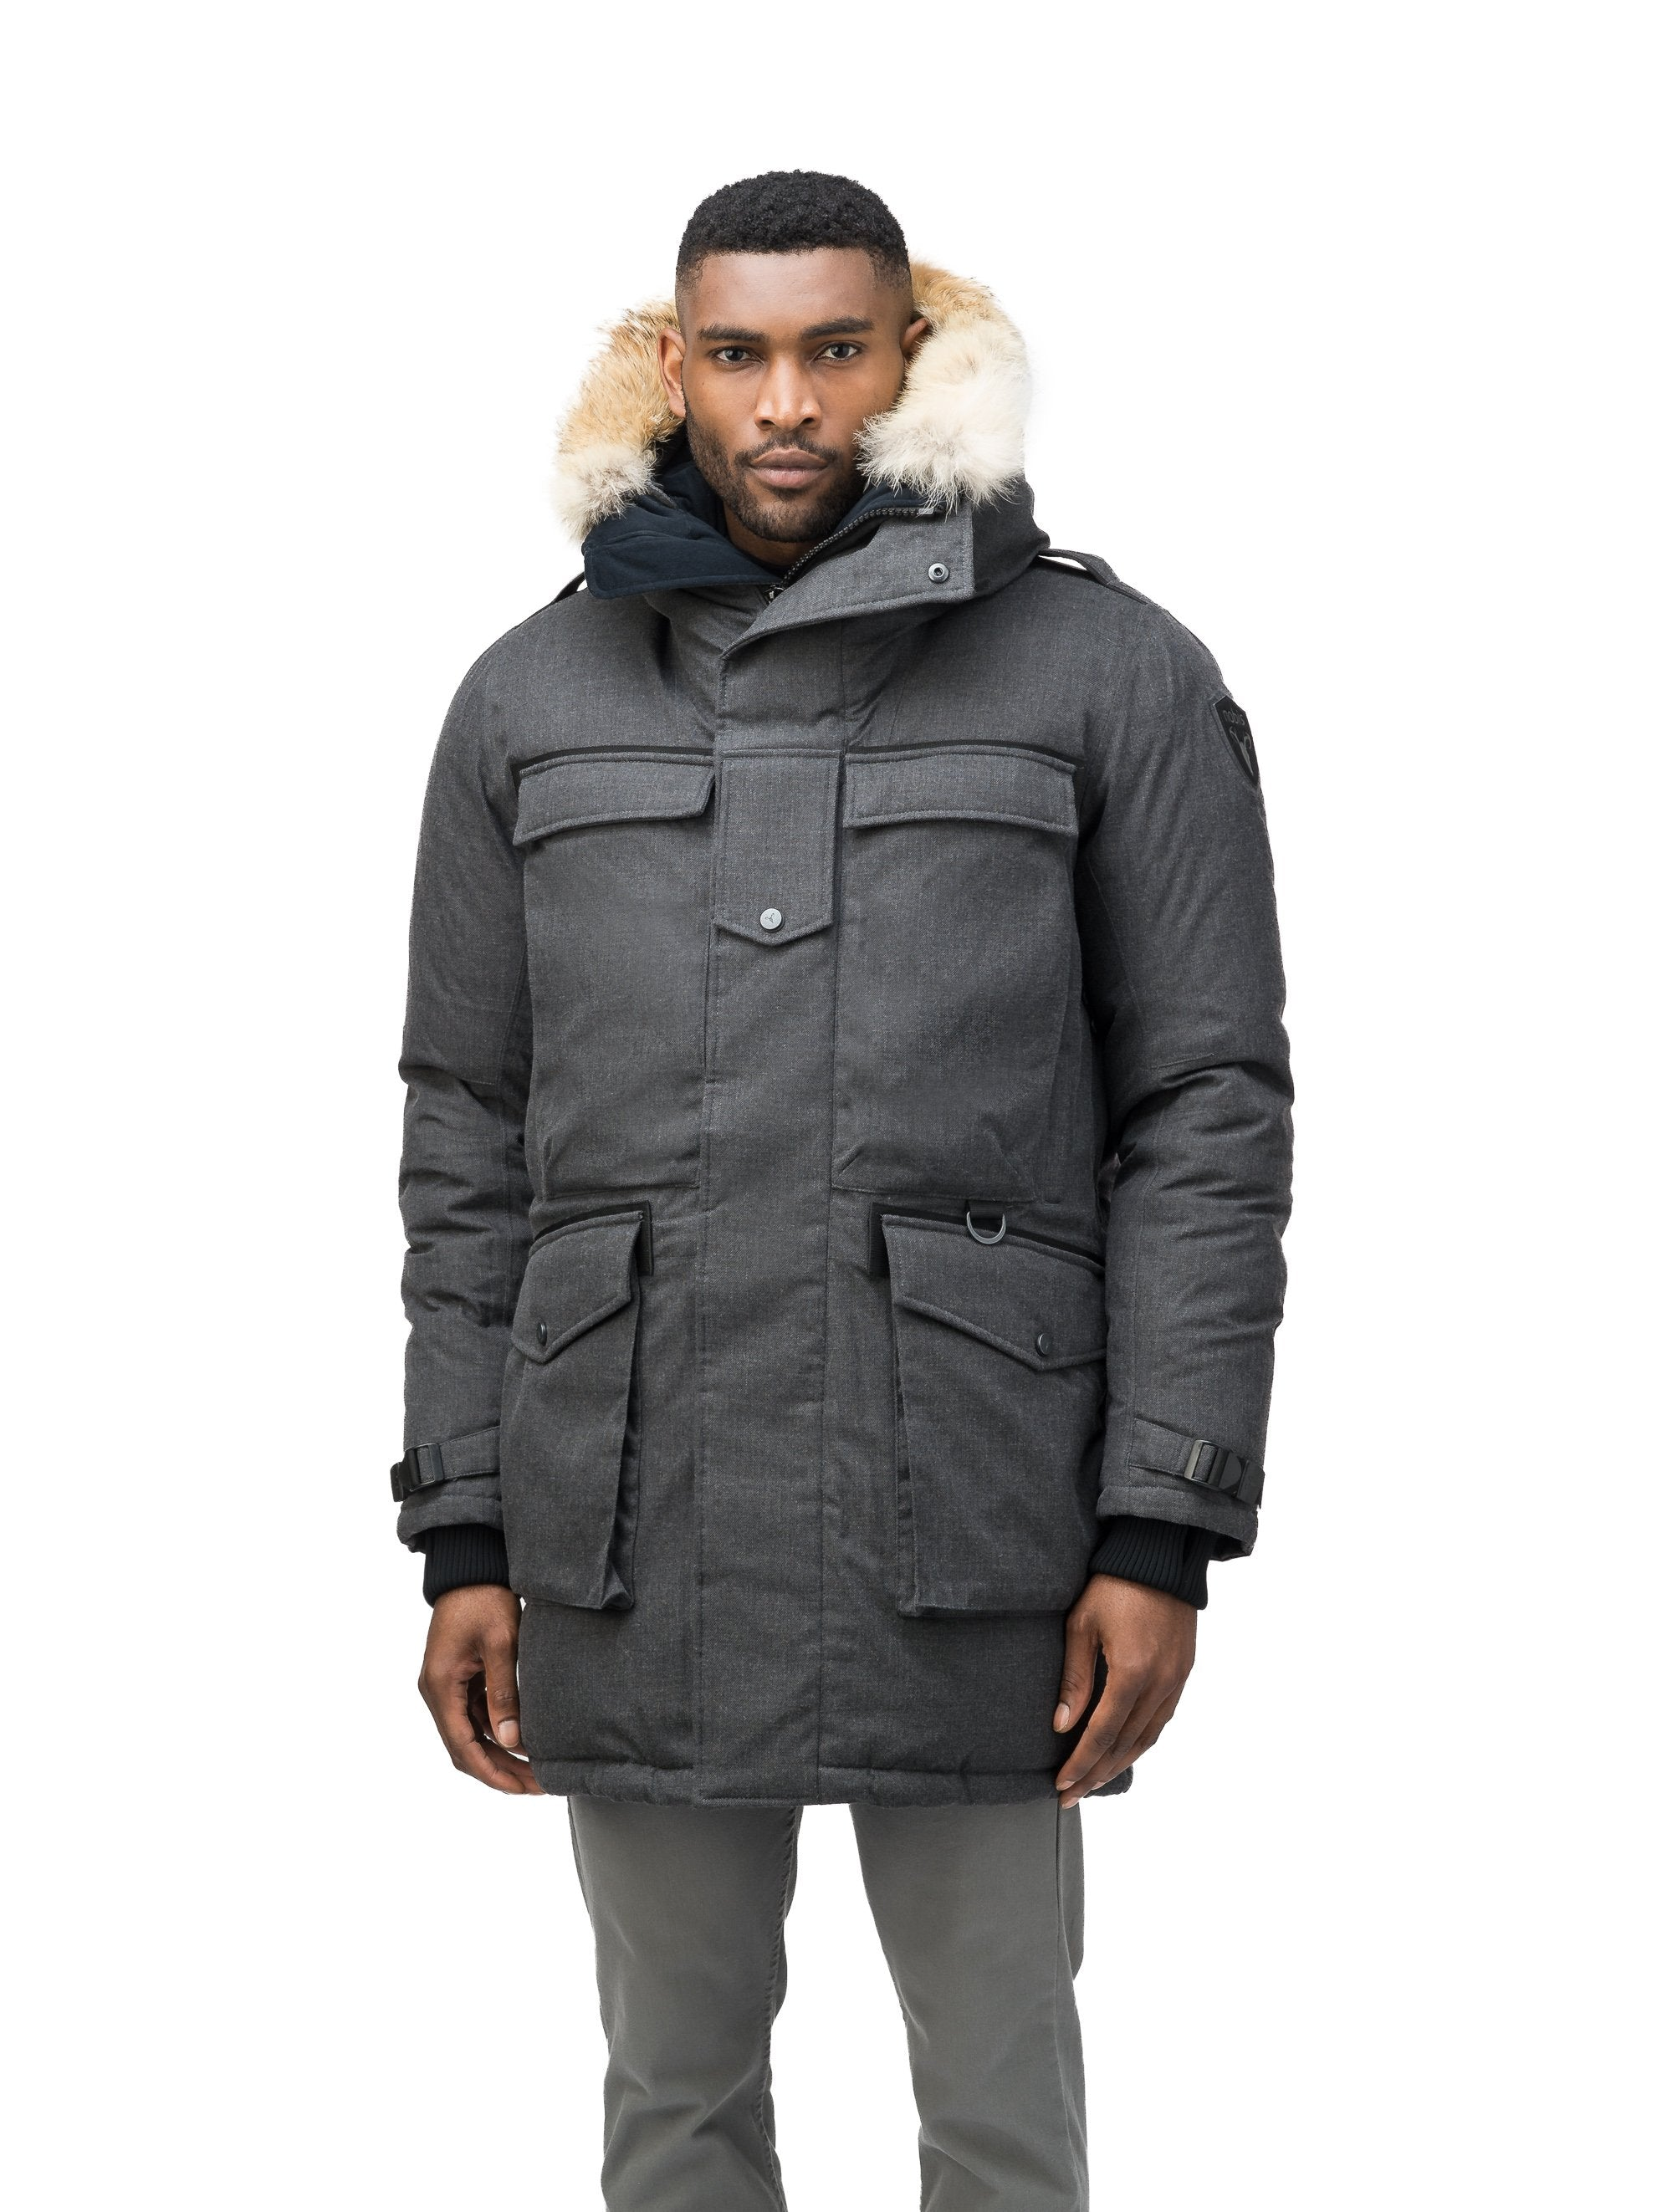 Men's extreme wamrth down filled parka with baffle box construction for even down distribution in H. Charcoal | color